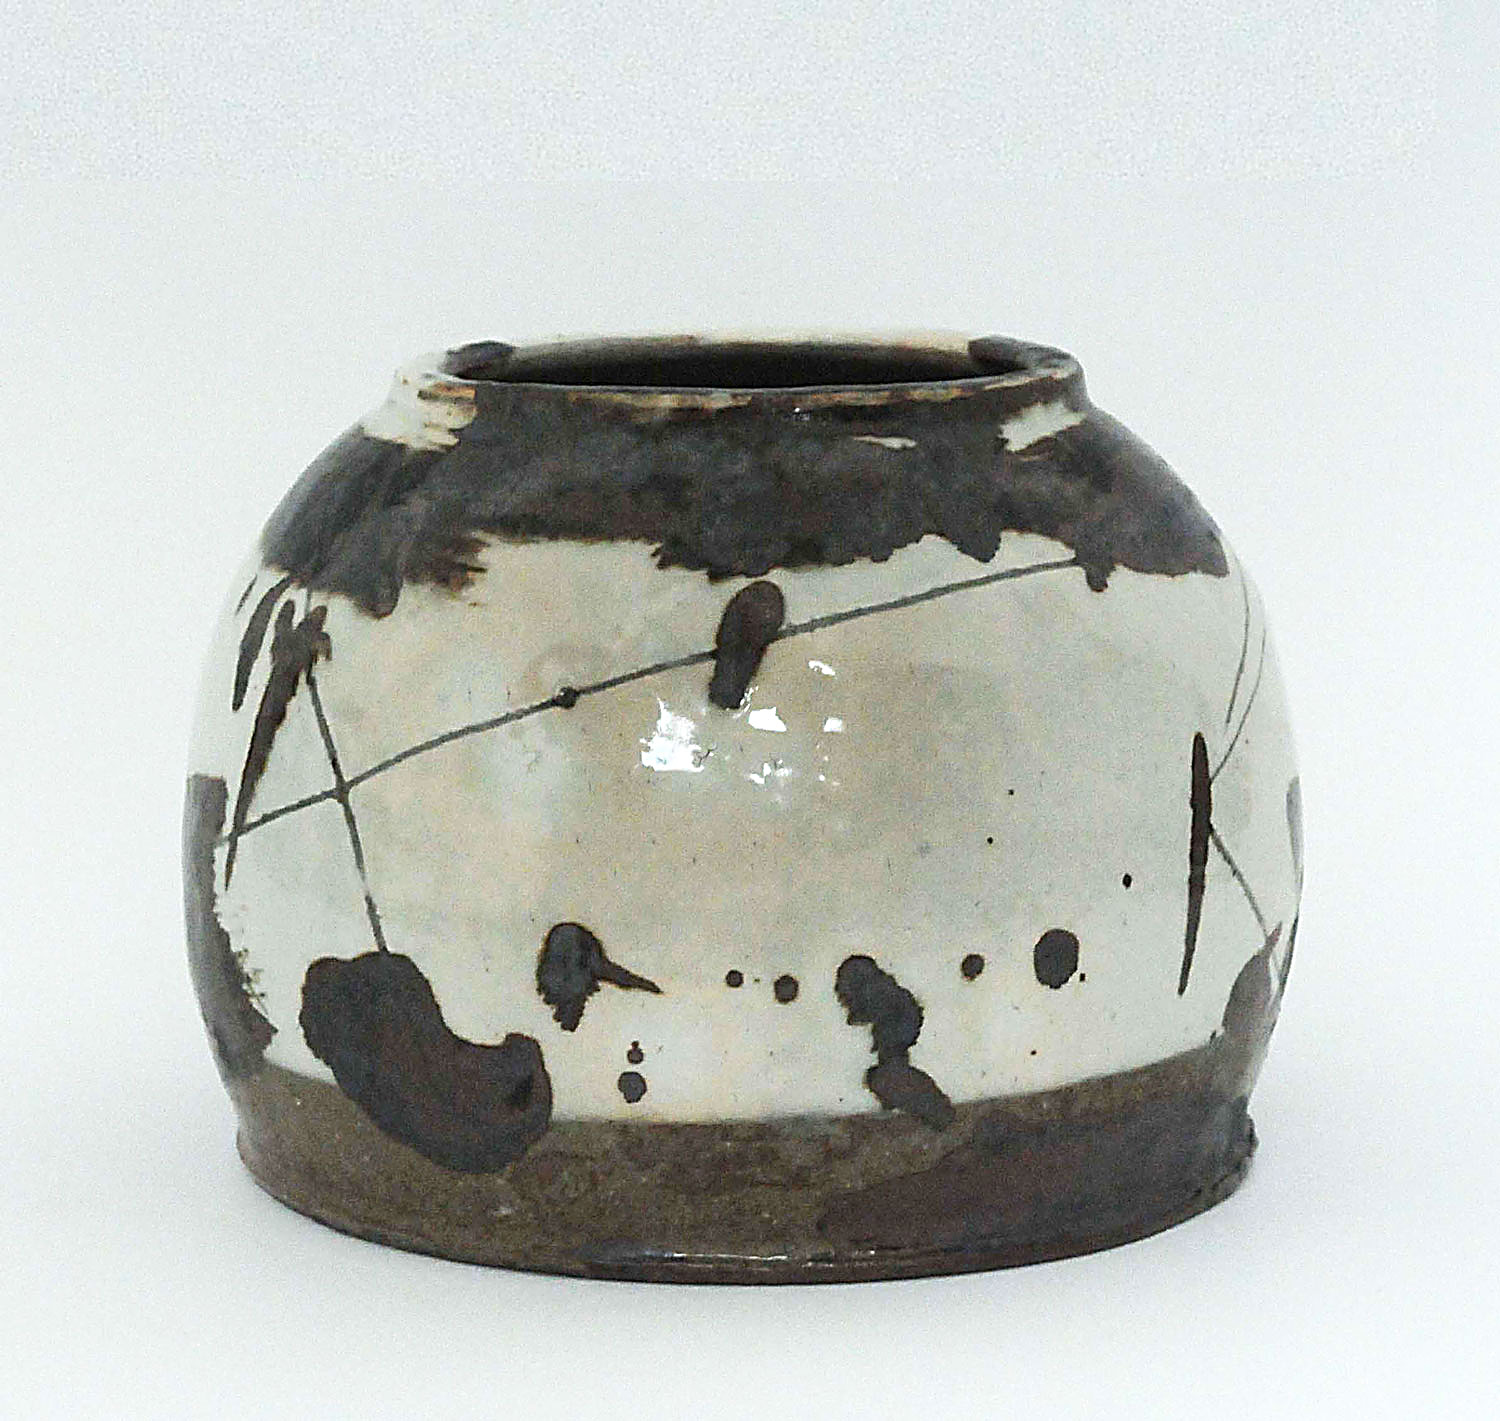 Ree-Soojong_Cousins-in-Clay_May-30-31-2020_Bulldog-Pottery_Seagrove_NC.jpg